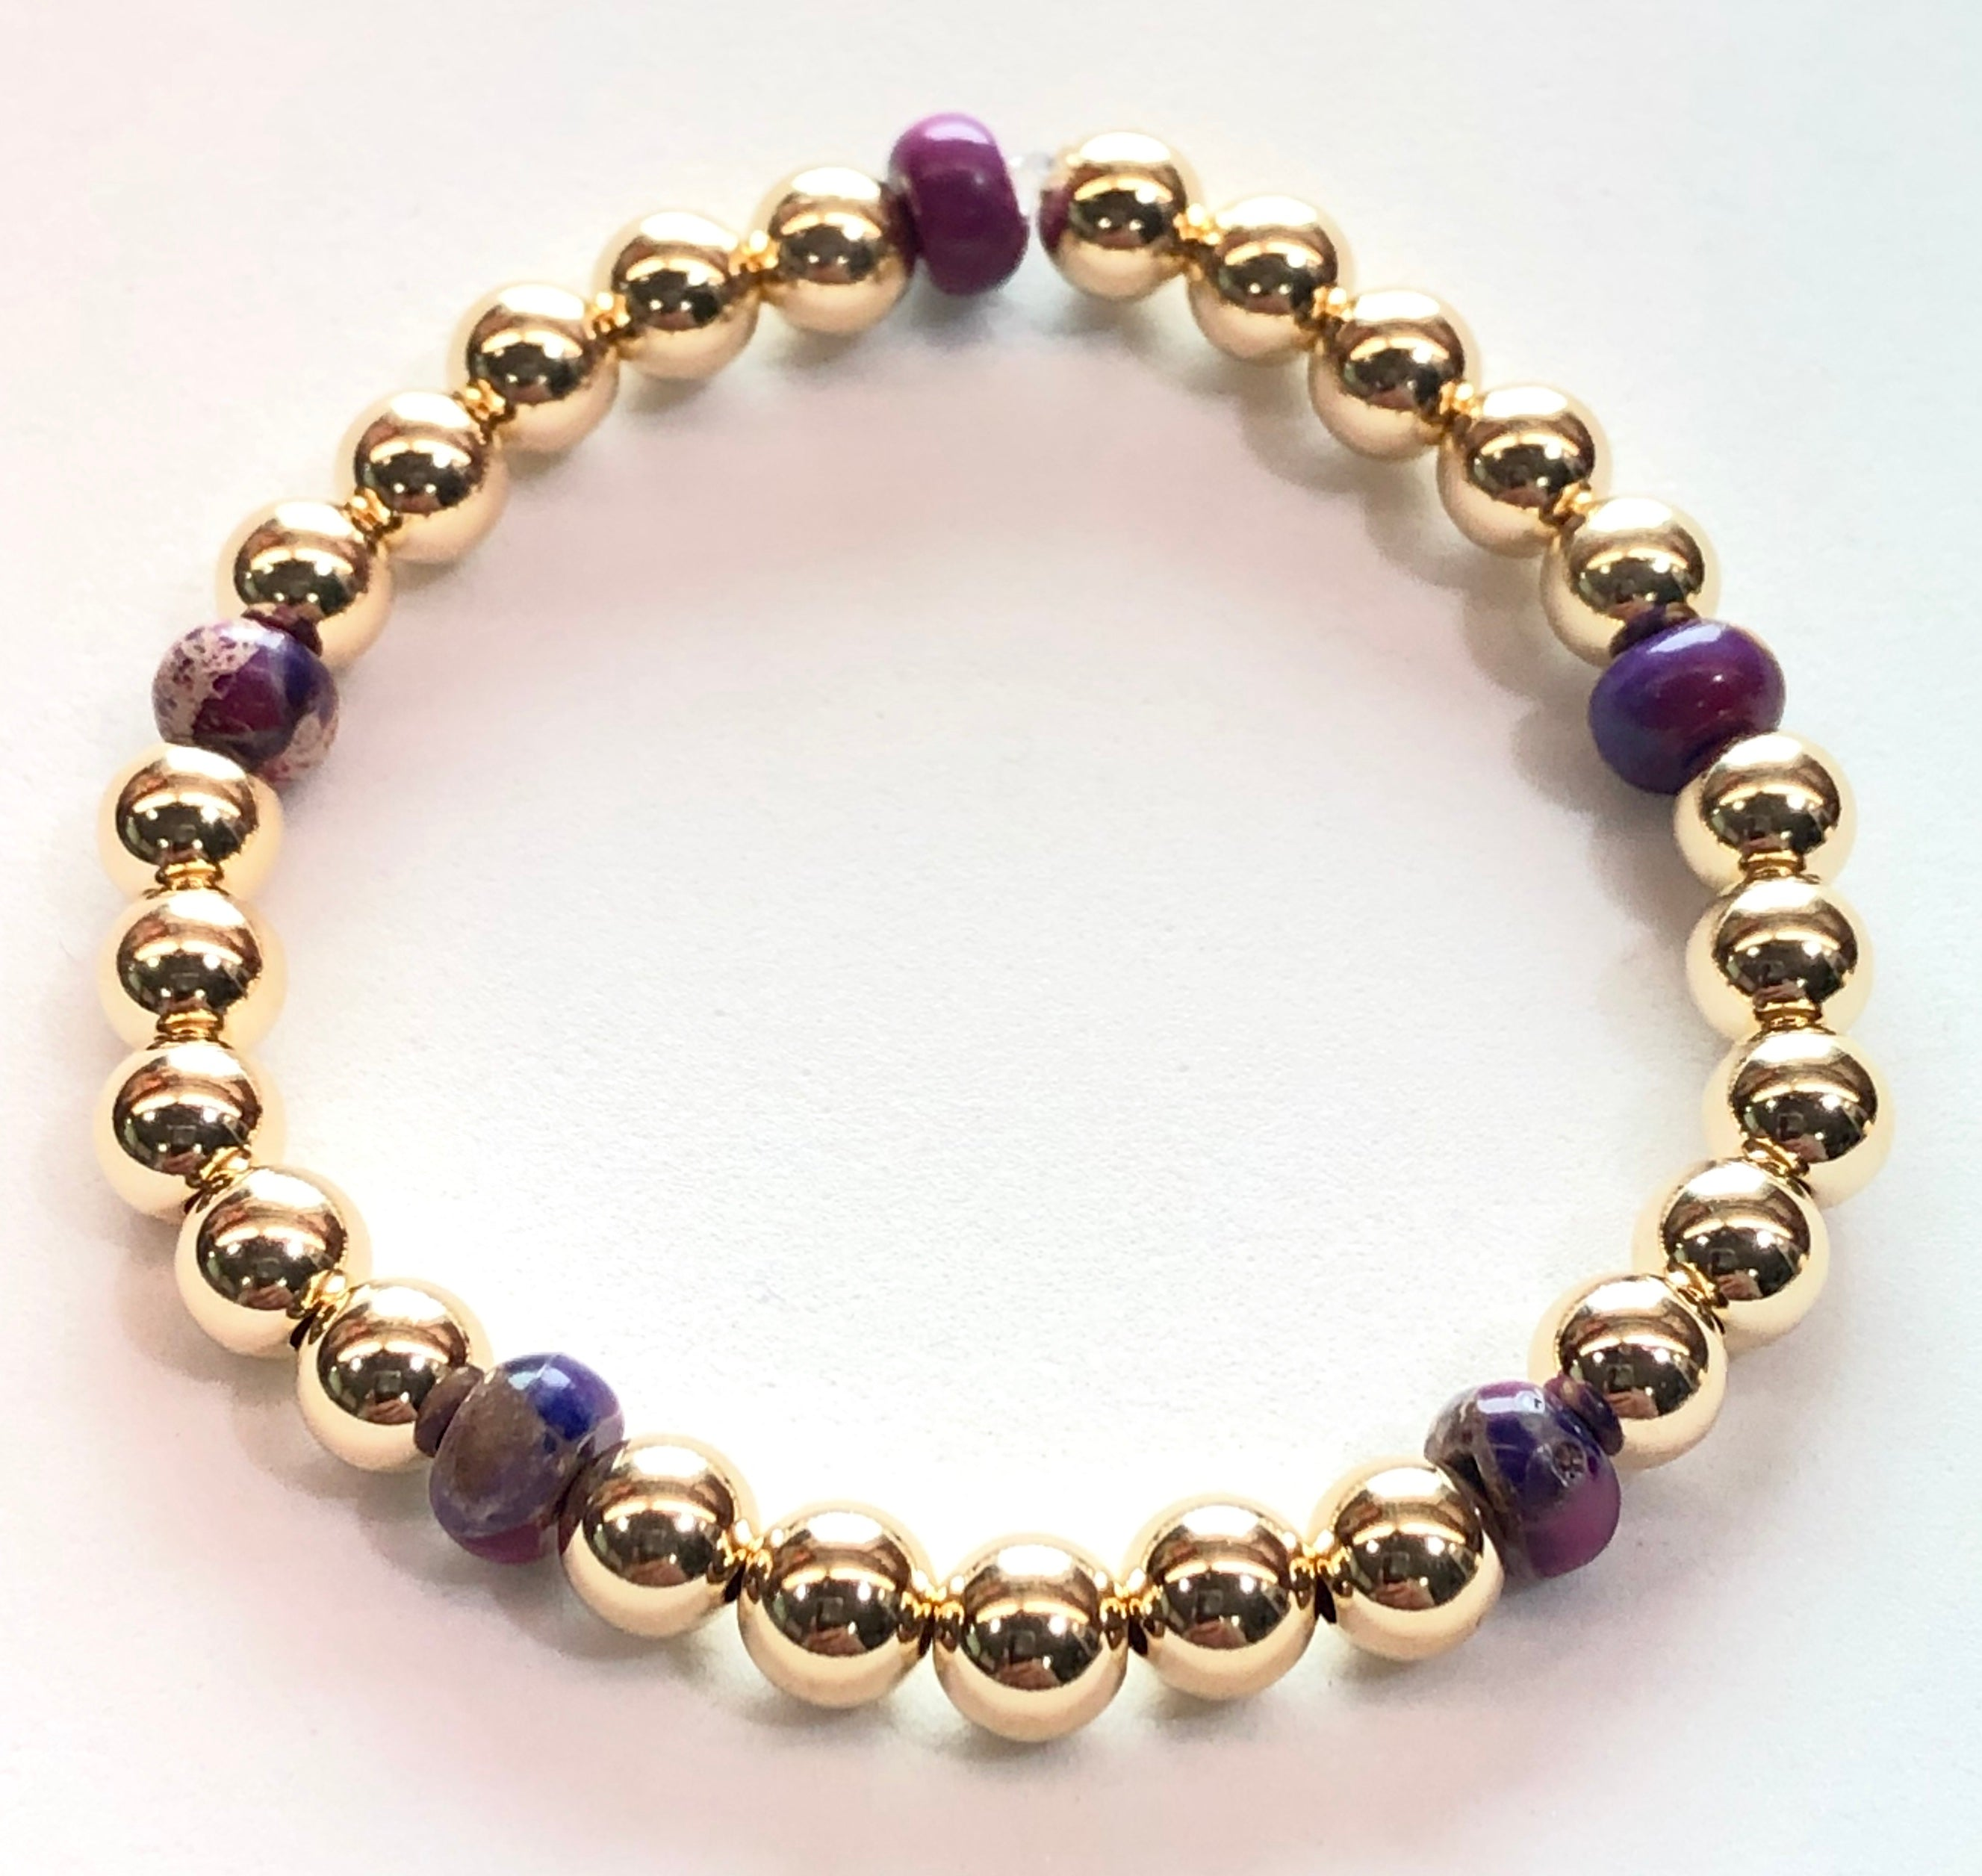 6mm 14kt Gold Filled Bead Bracelet with 6mm Purple Jasper Beads